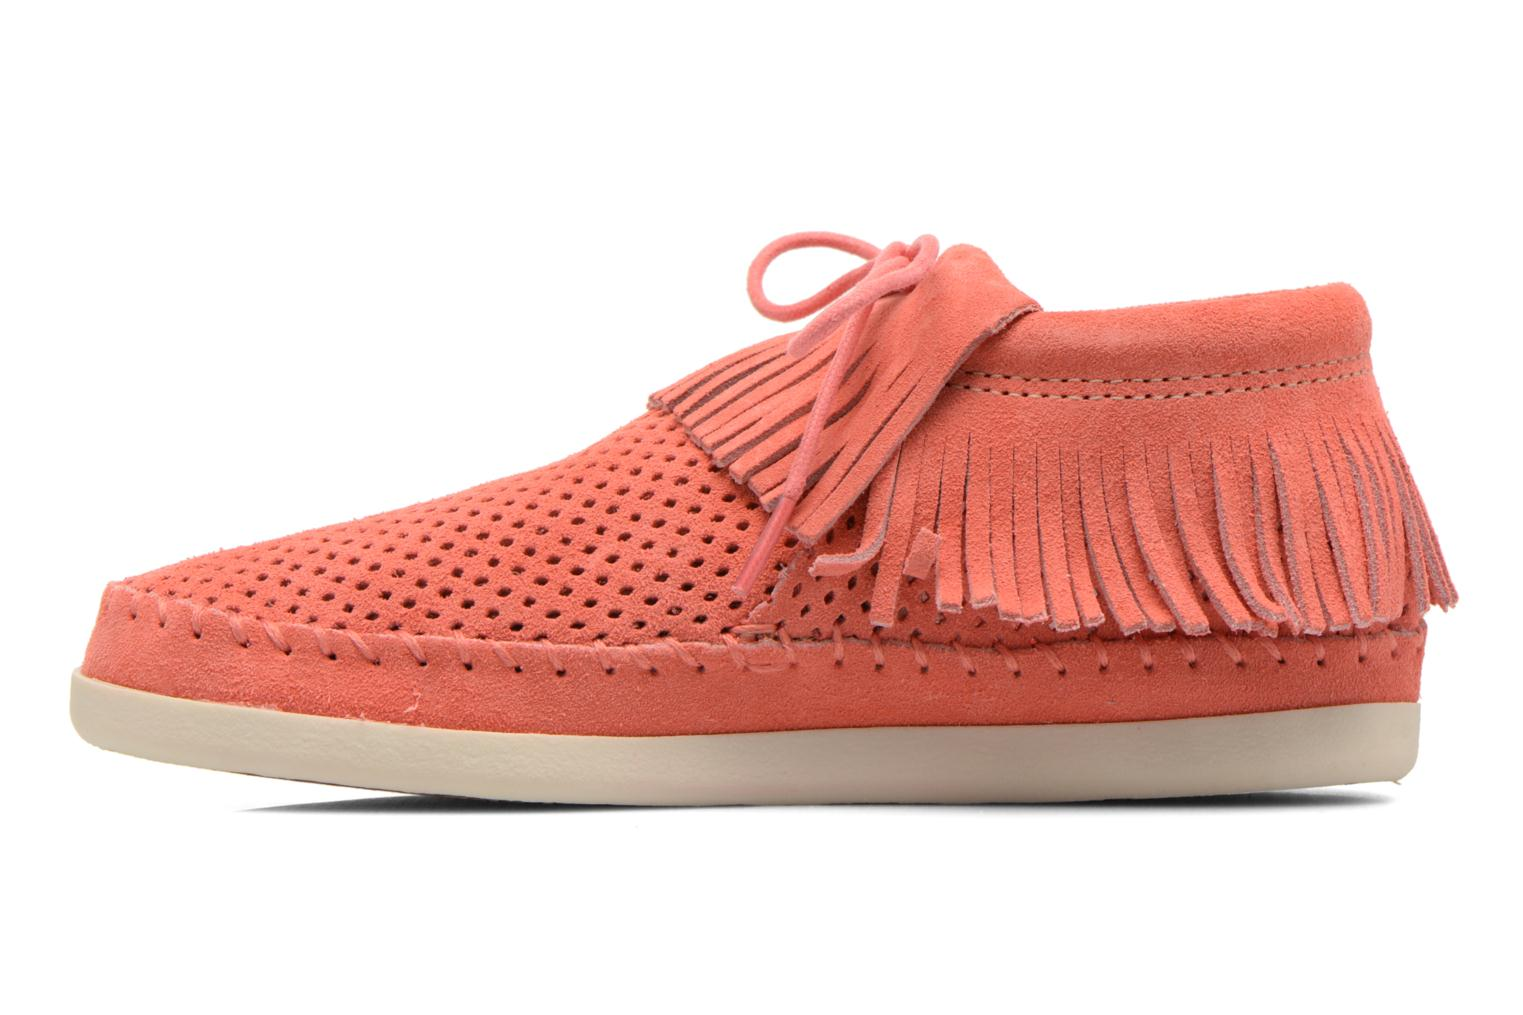 Venice Perf Melon Perforated Suede